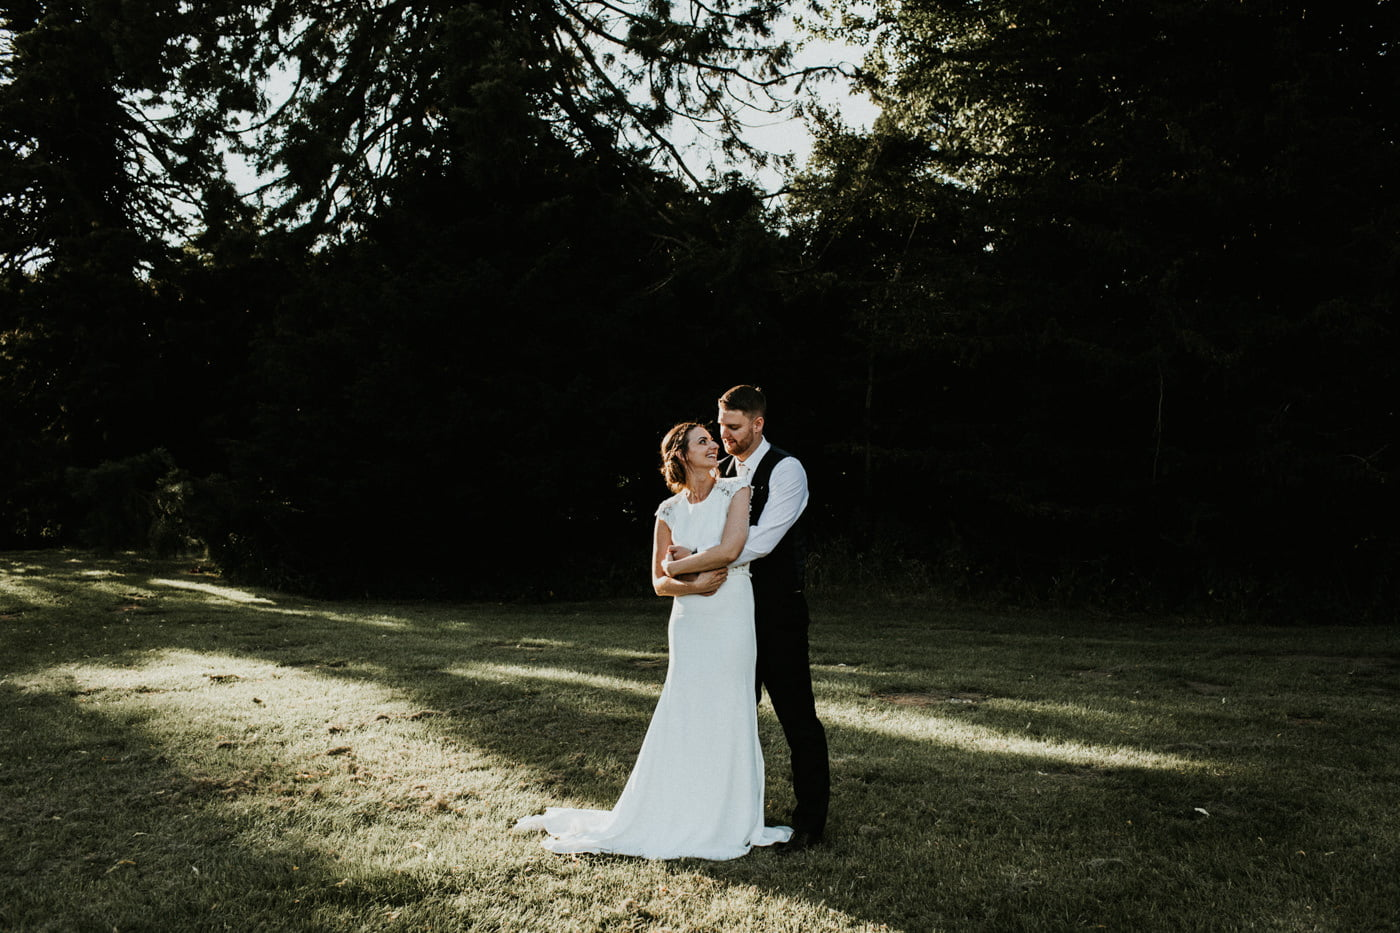 Katy and Adam, Elmhay Park, Somerset 76